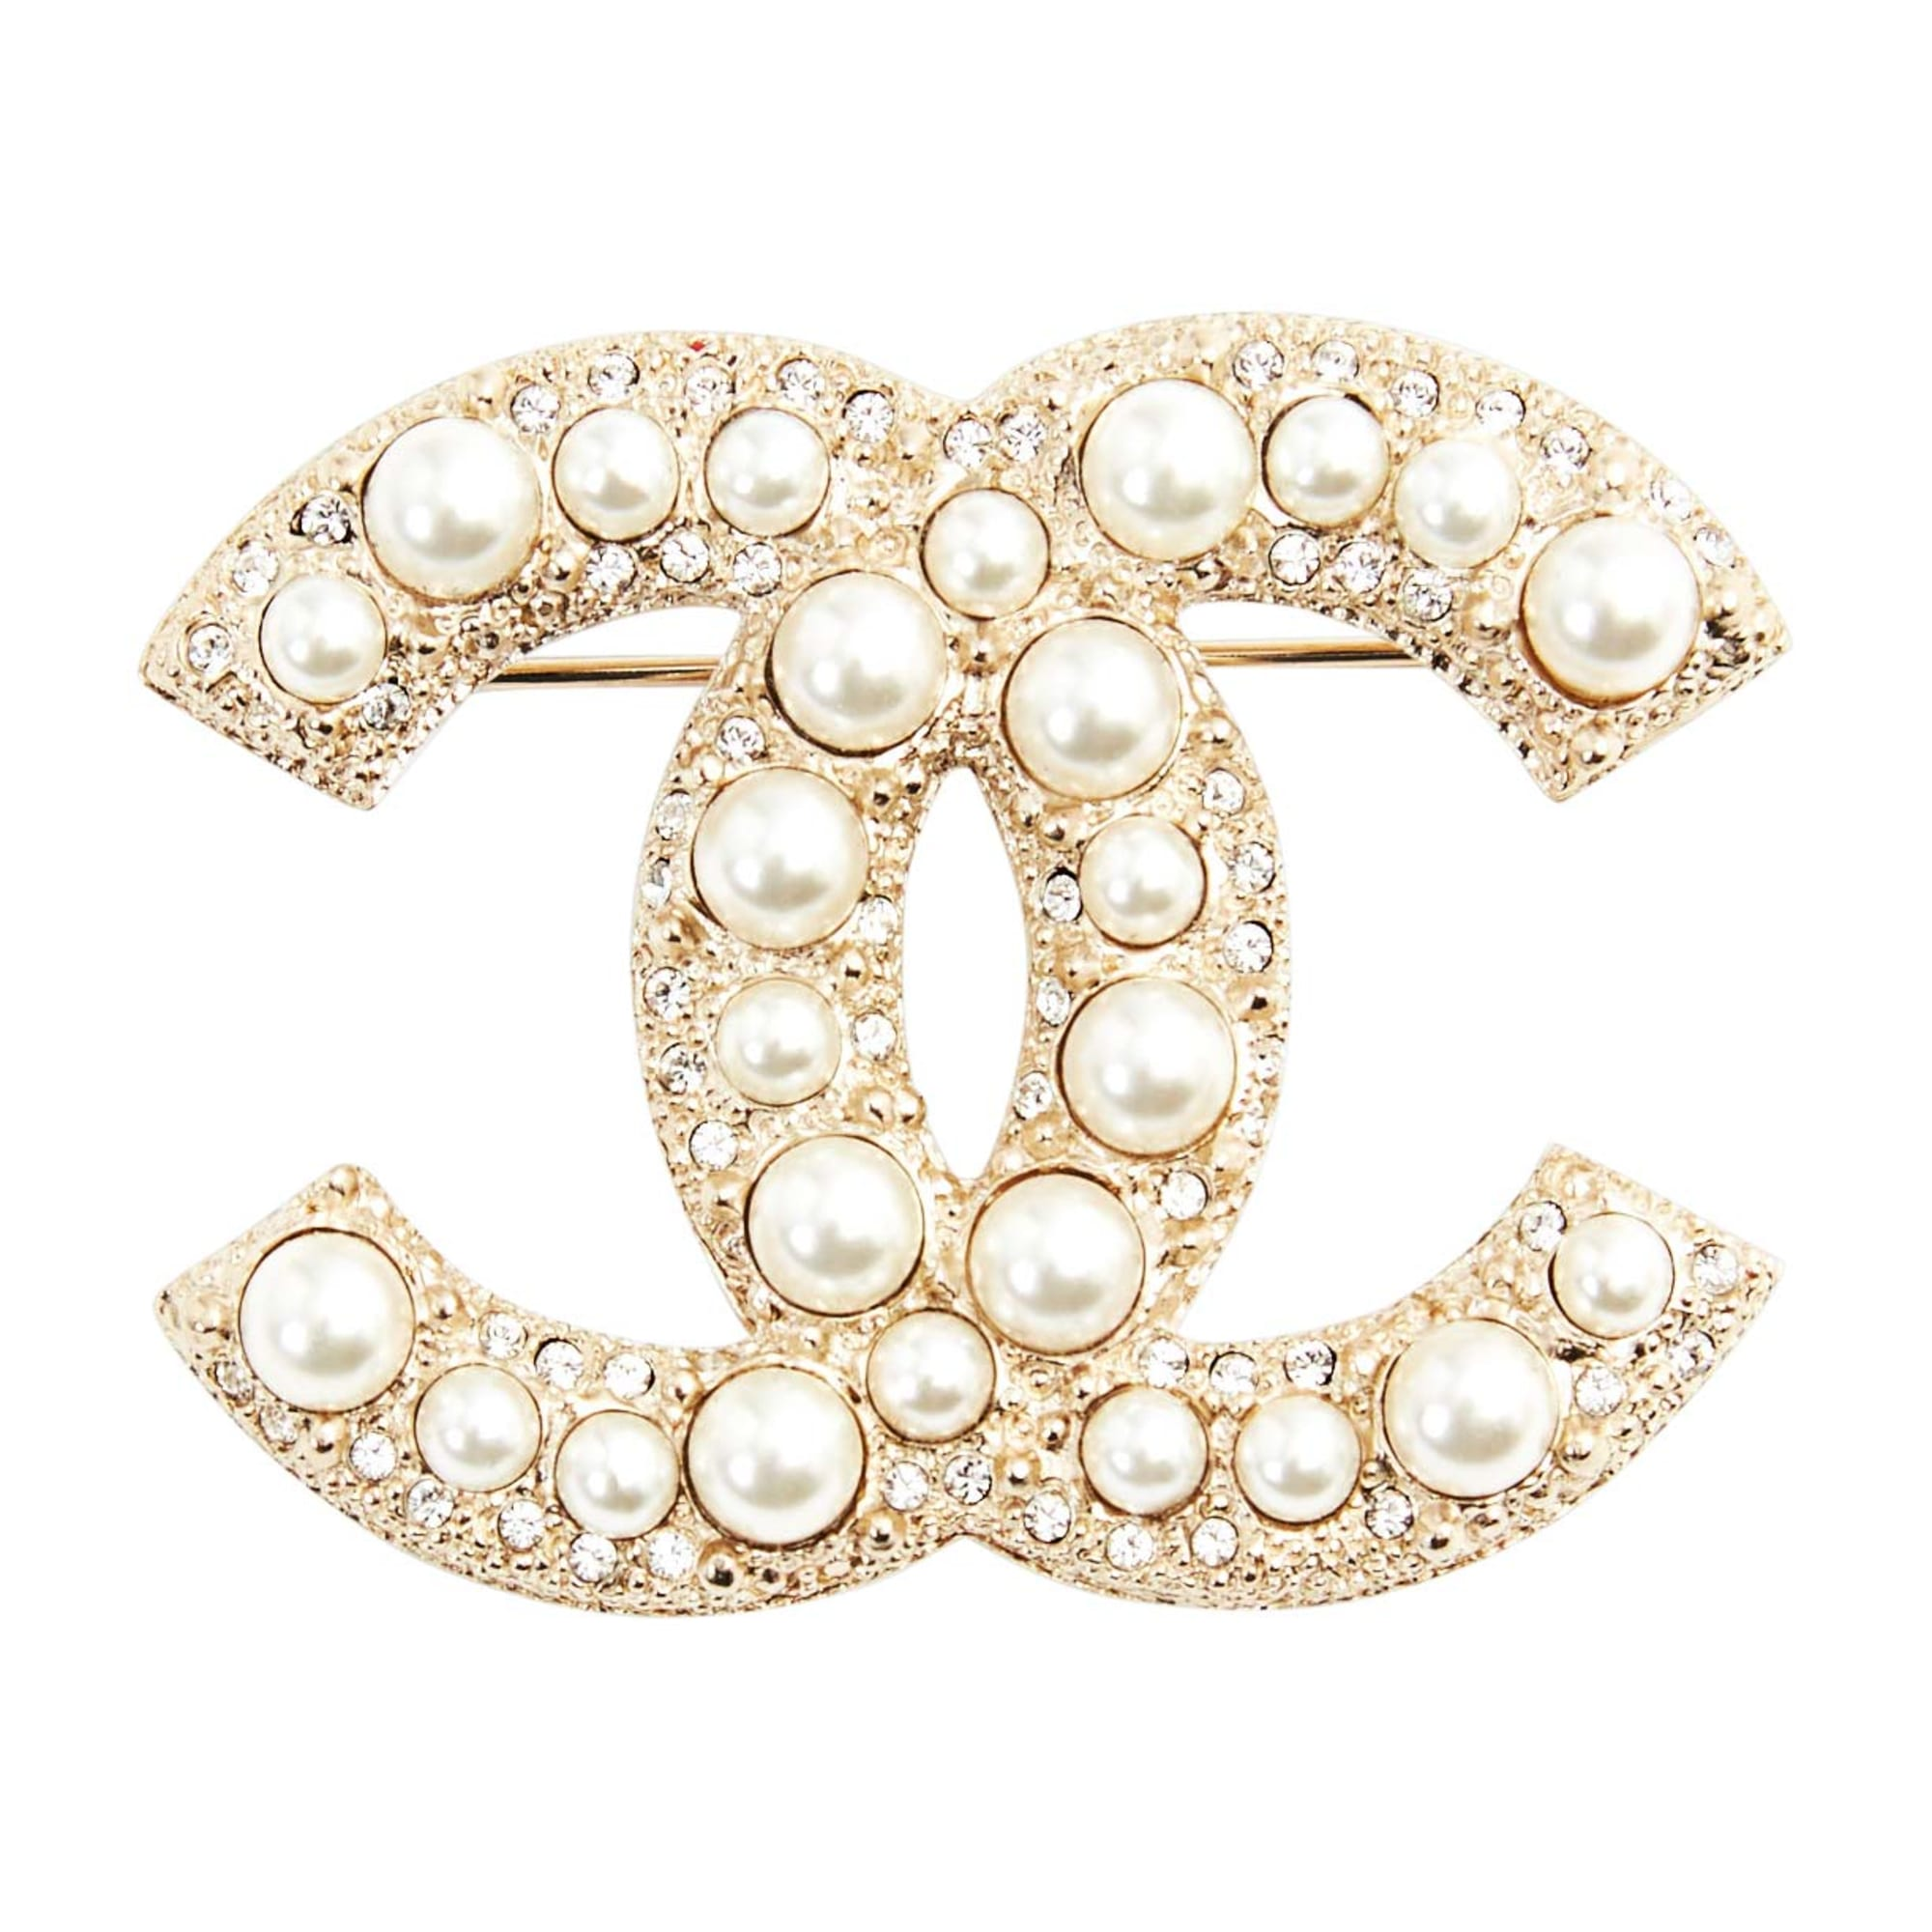 chanel in devon silver cc p diamante jewellery gorgeous tiverton brooch